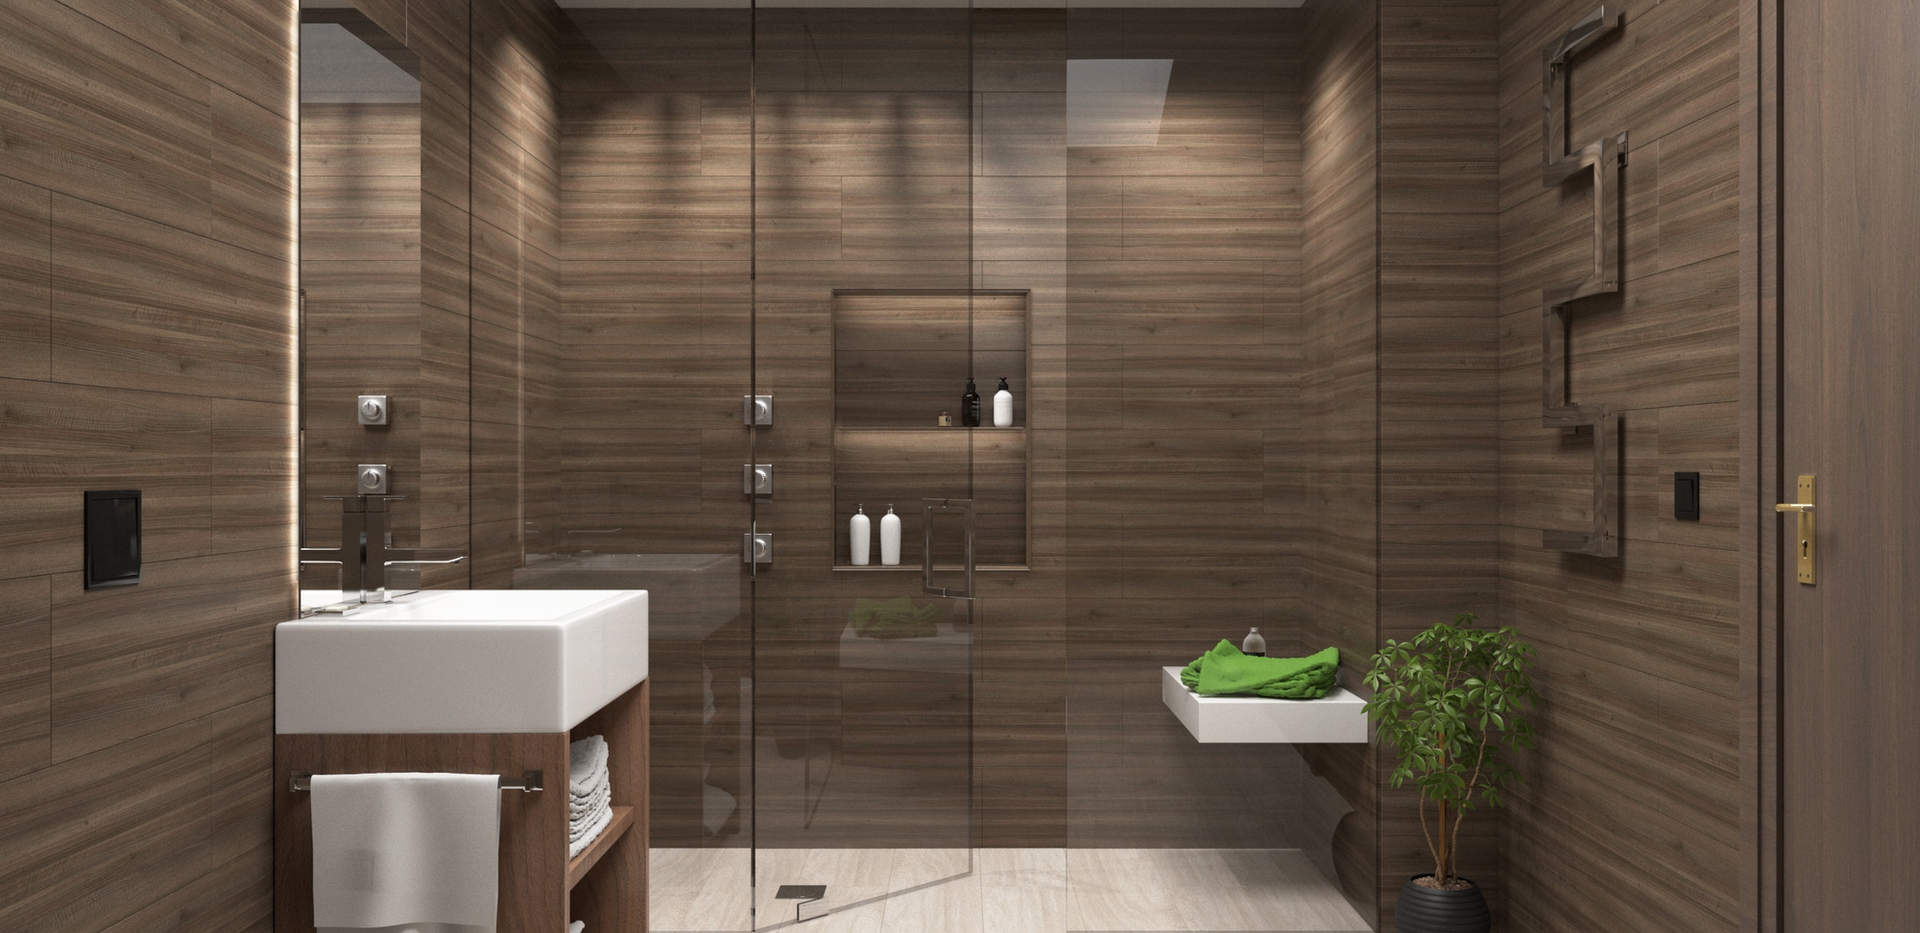 bathroom-modern-architecture-toilet-4967